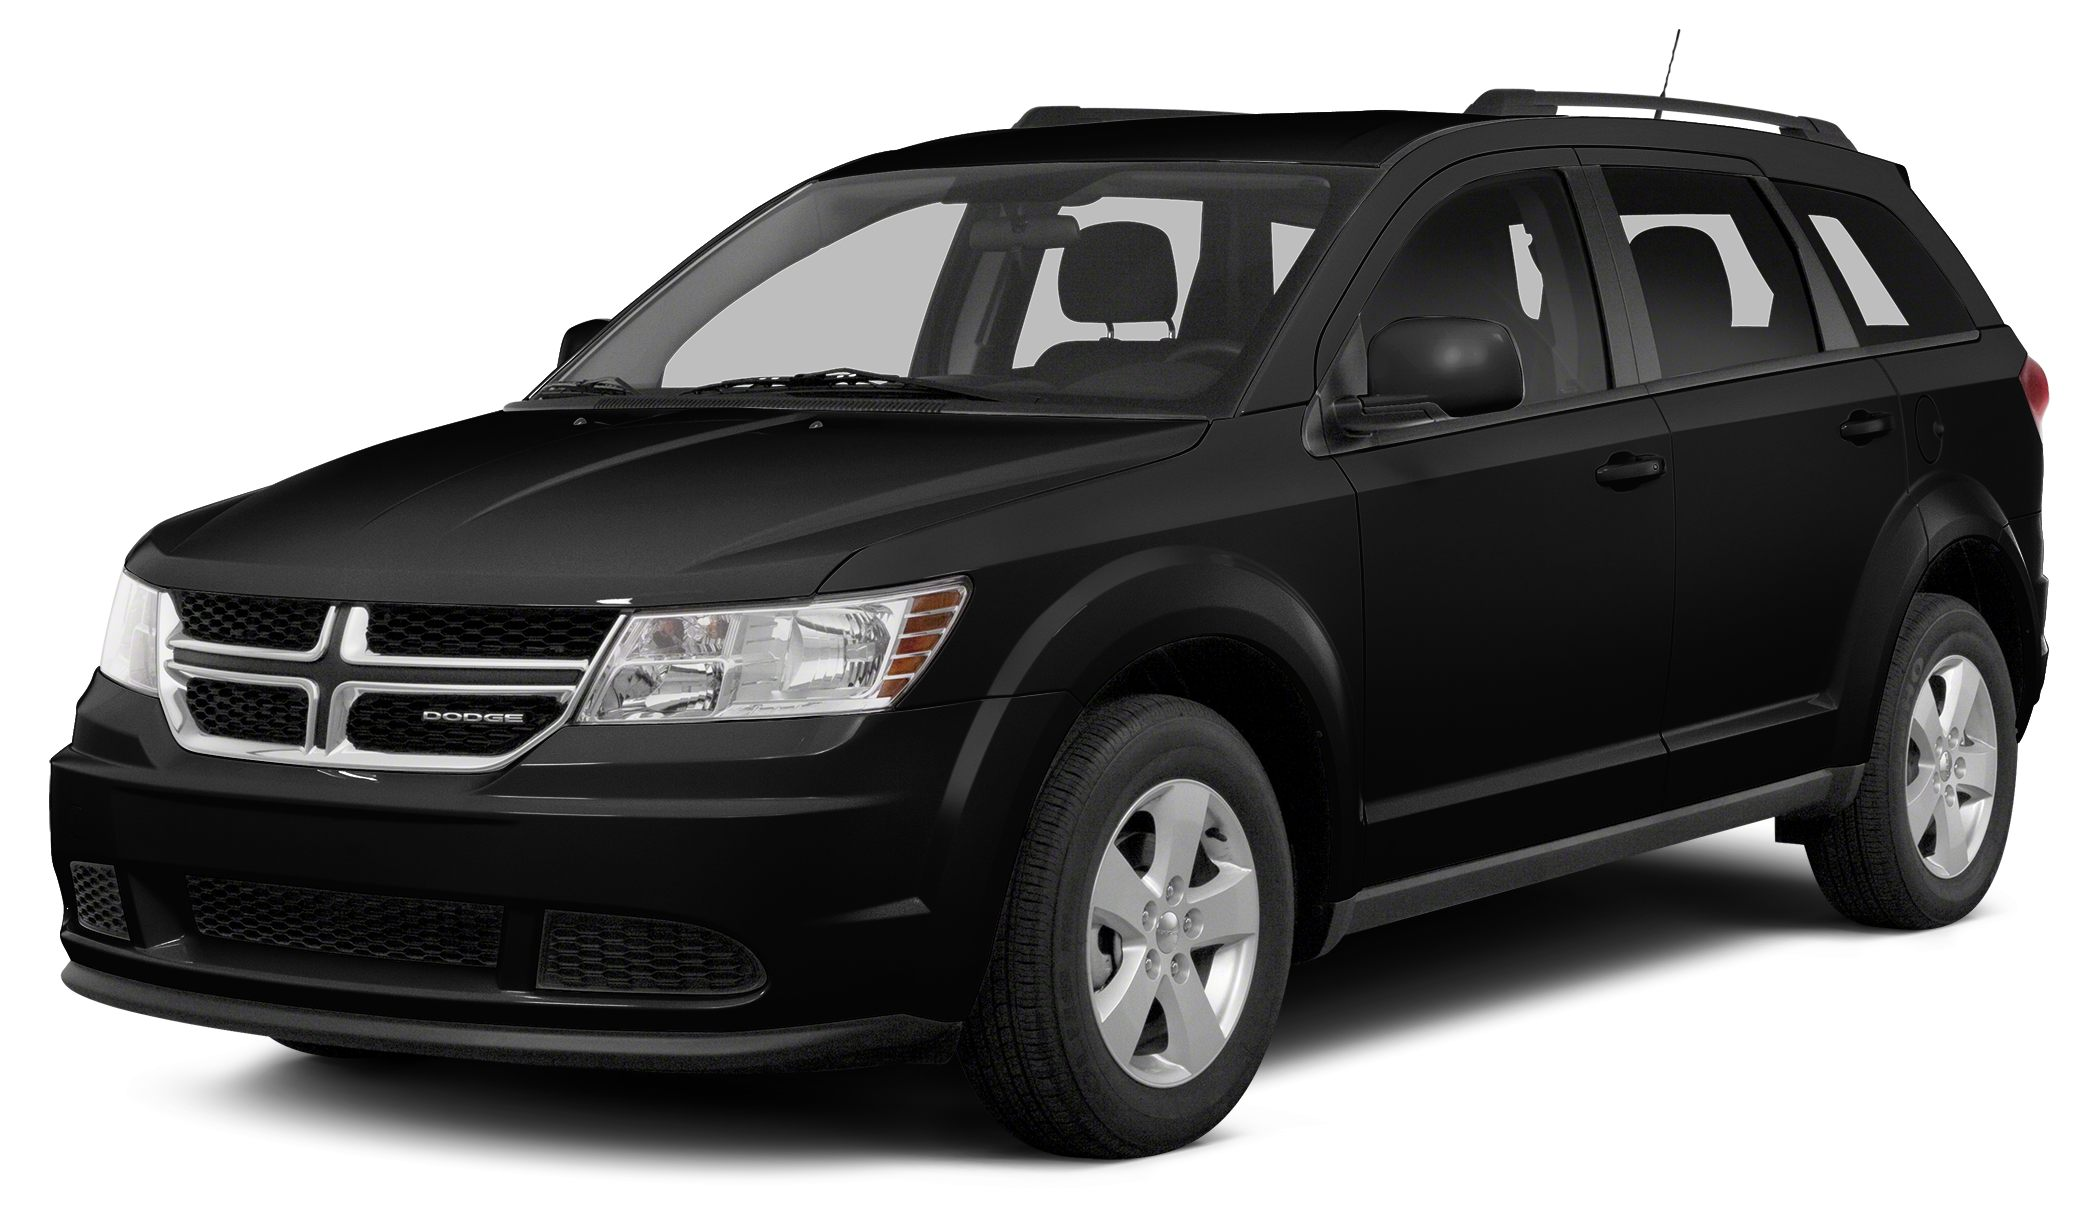 2013 Dodge Journey SXT WE SELL OUR VEHICLES AT WHOLESALE PRICES AND STAND BEHIND OUR CARS  CO